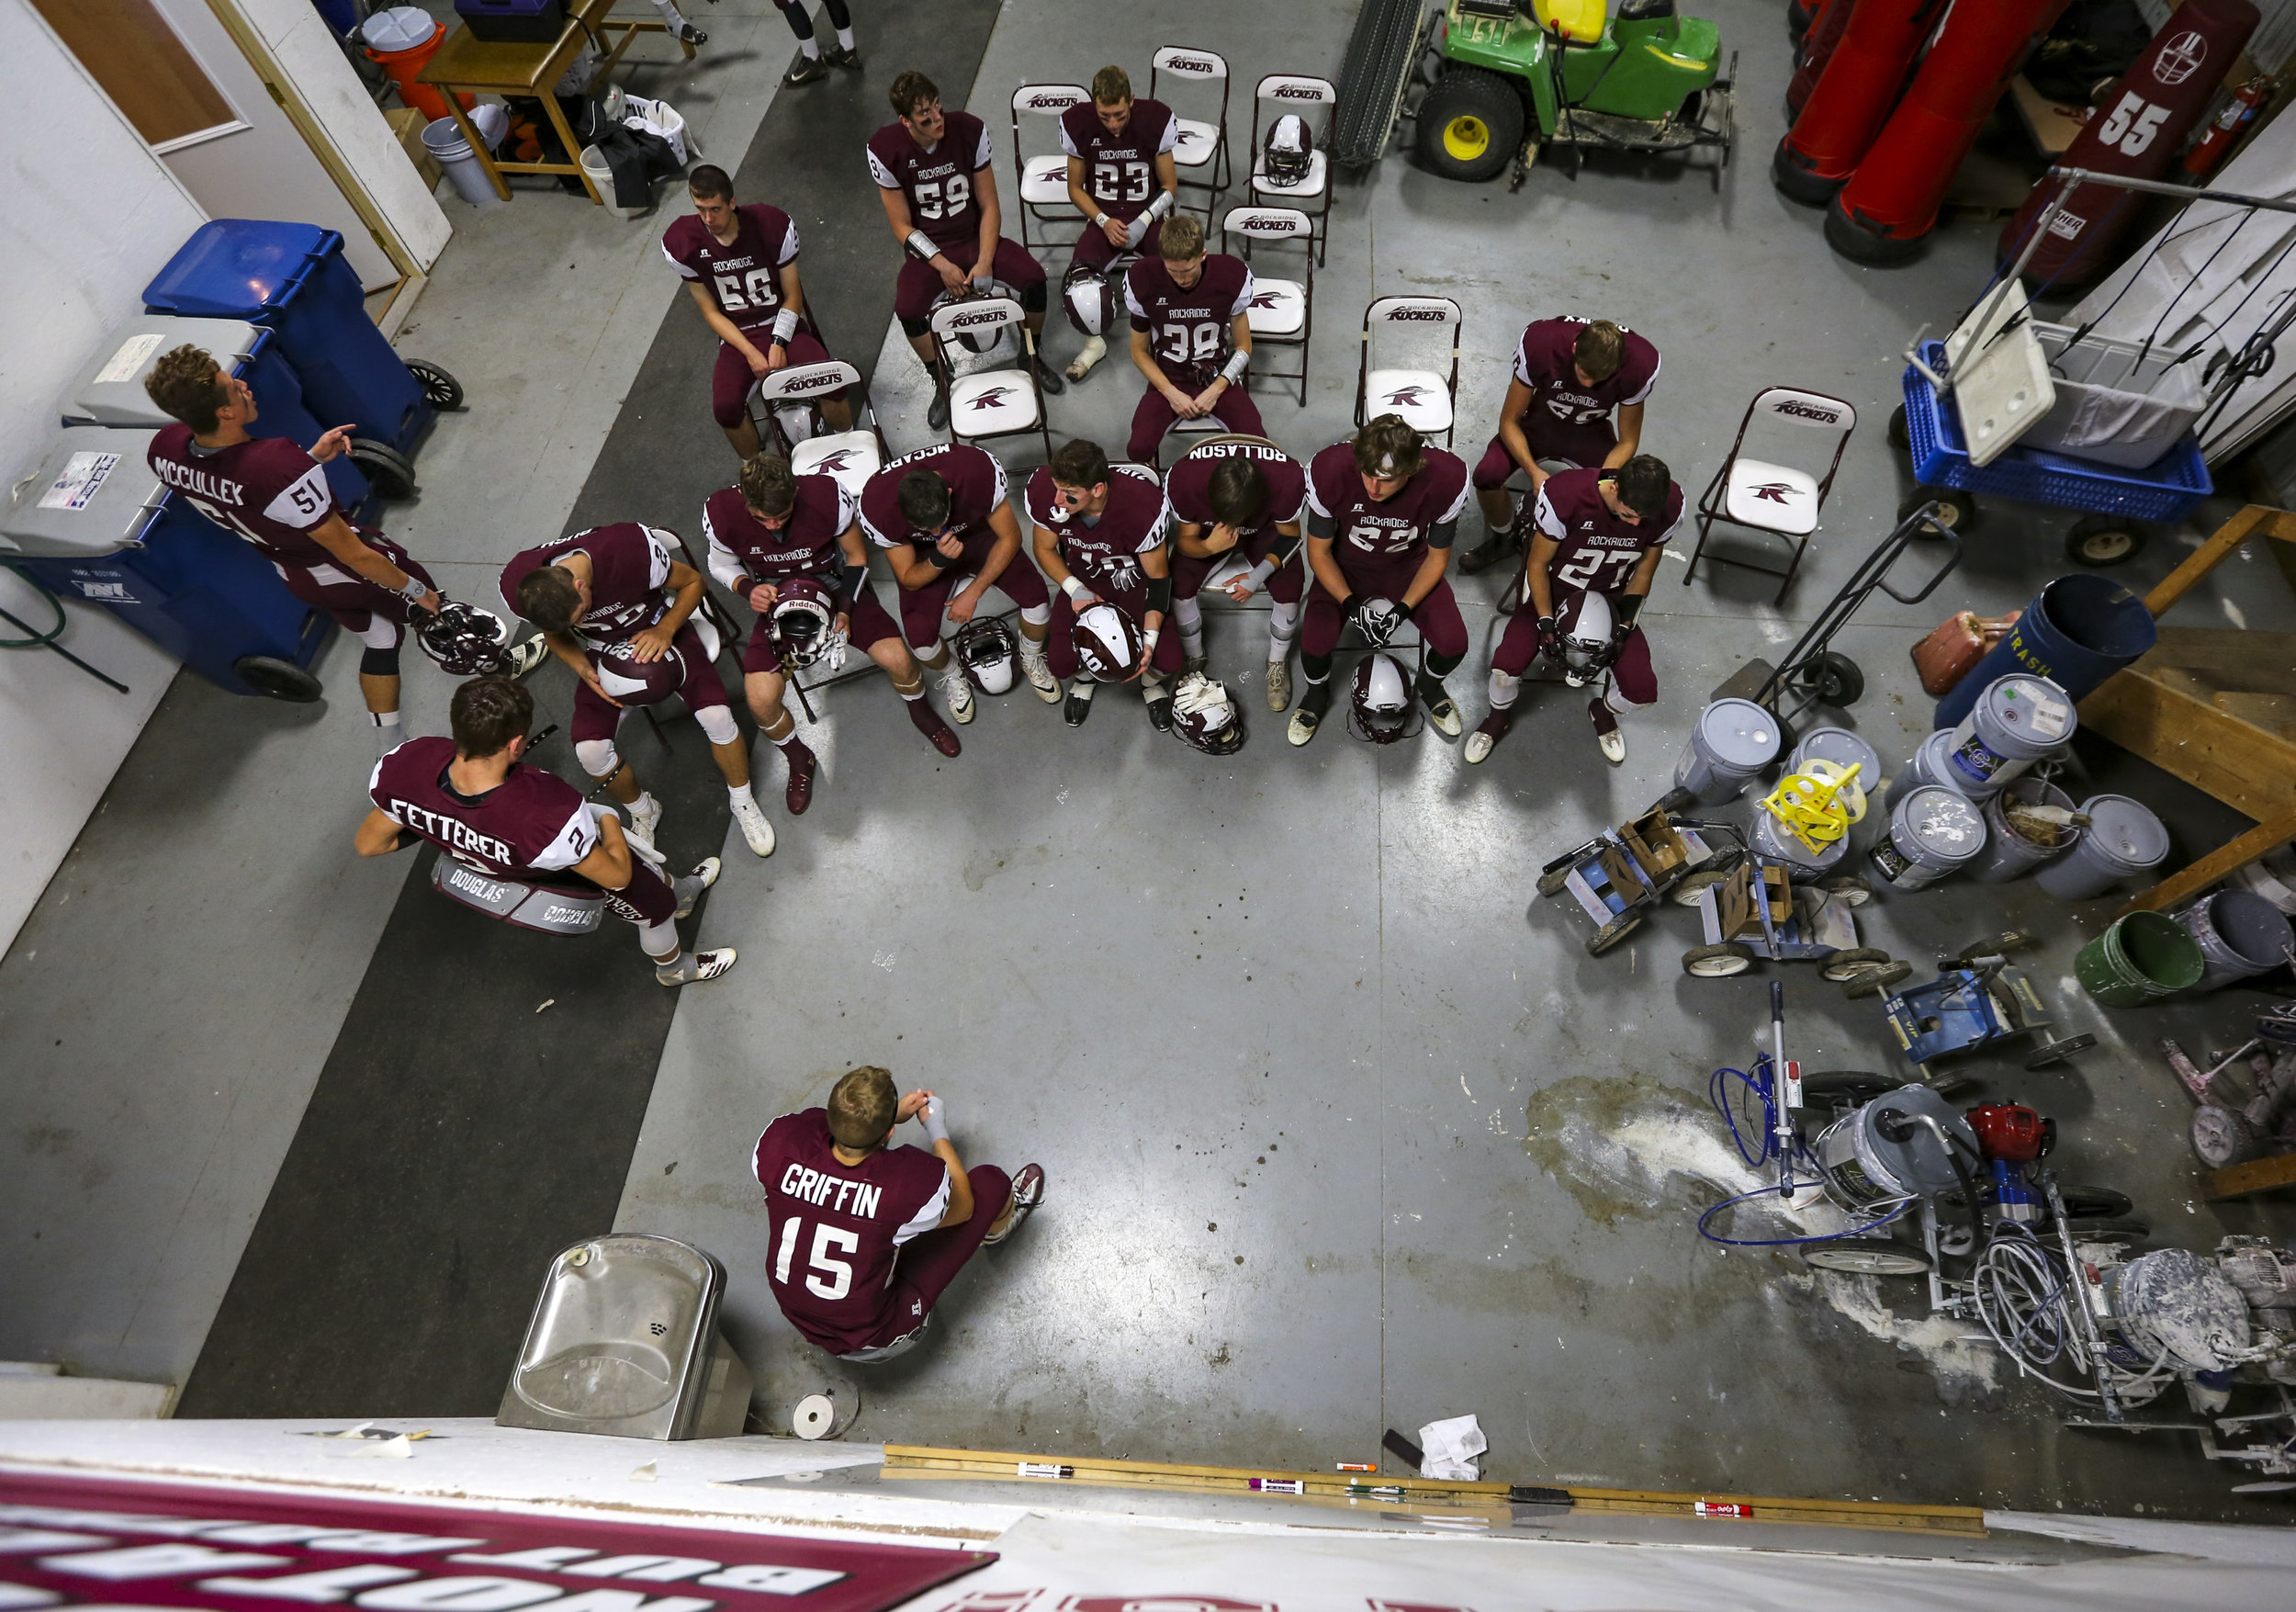 Rockridge players take a moment together in the locker room before their game at Rockridge High School in Edginton, Friday, October 20, 2017.